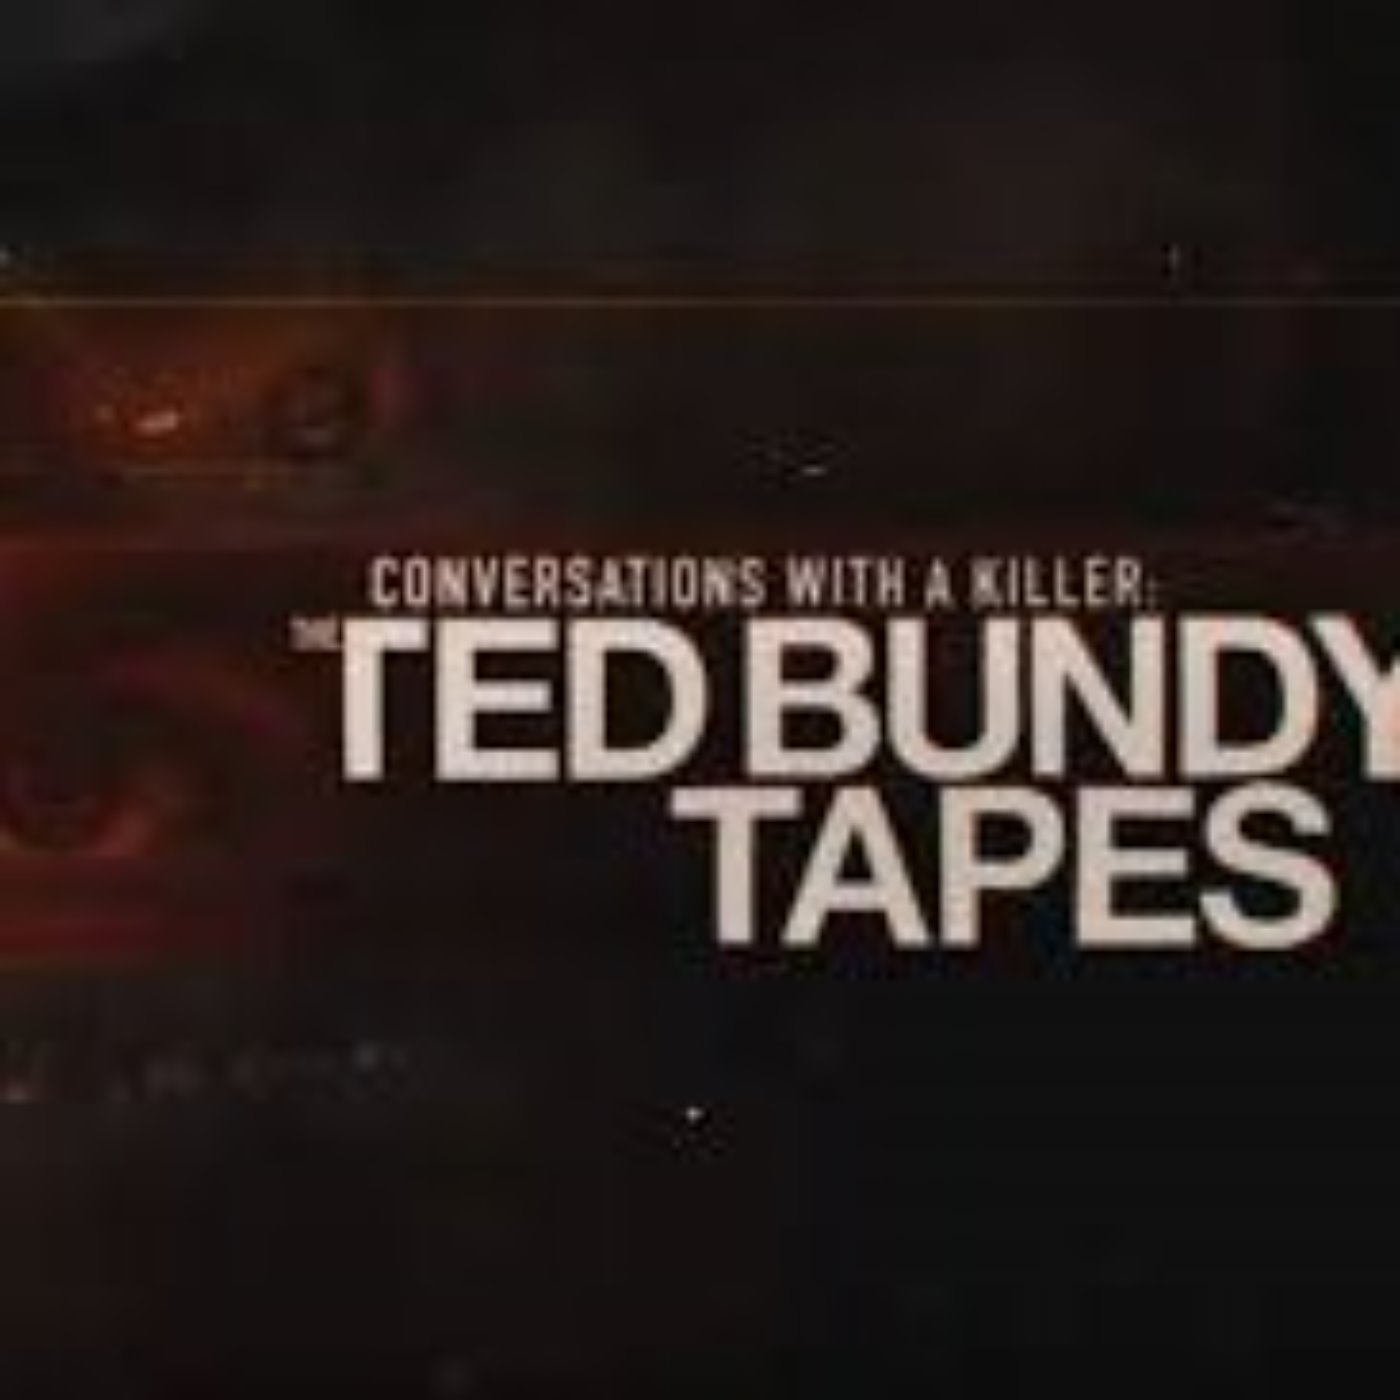 TED BUNDY TAPES - stephen michaud